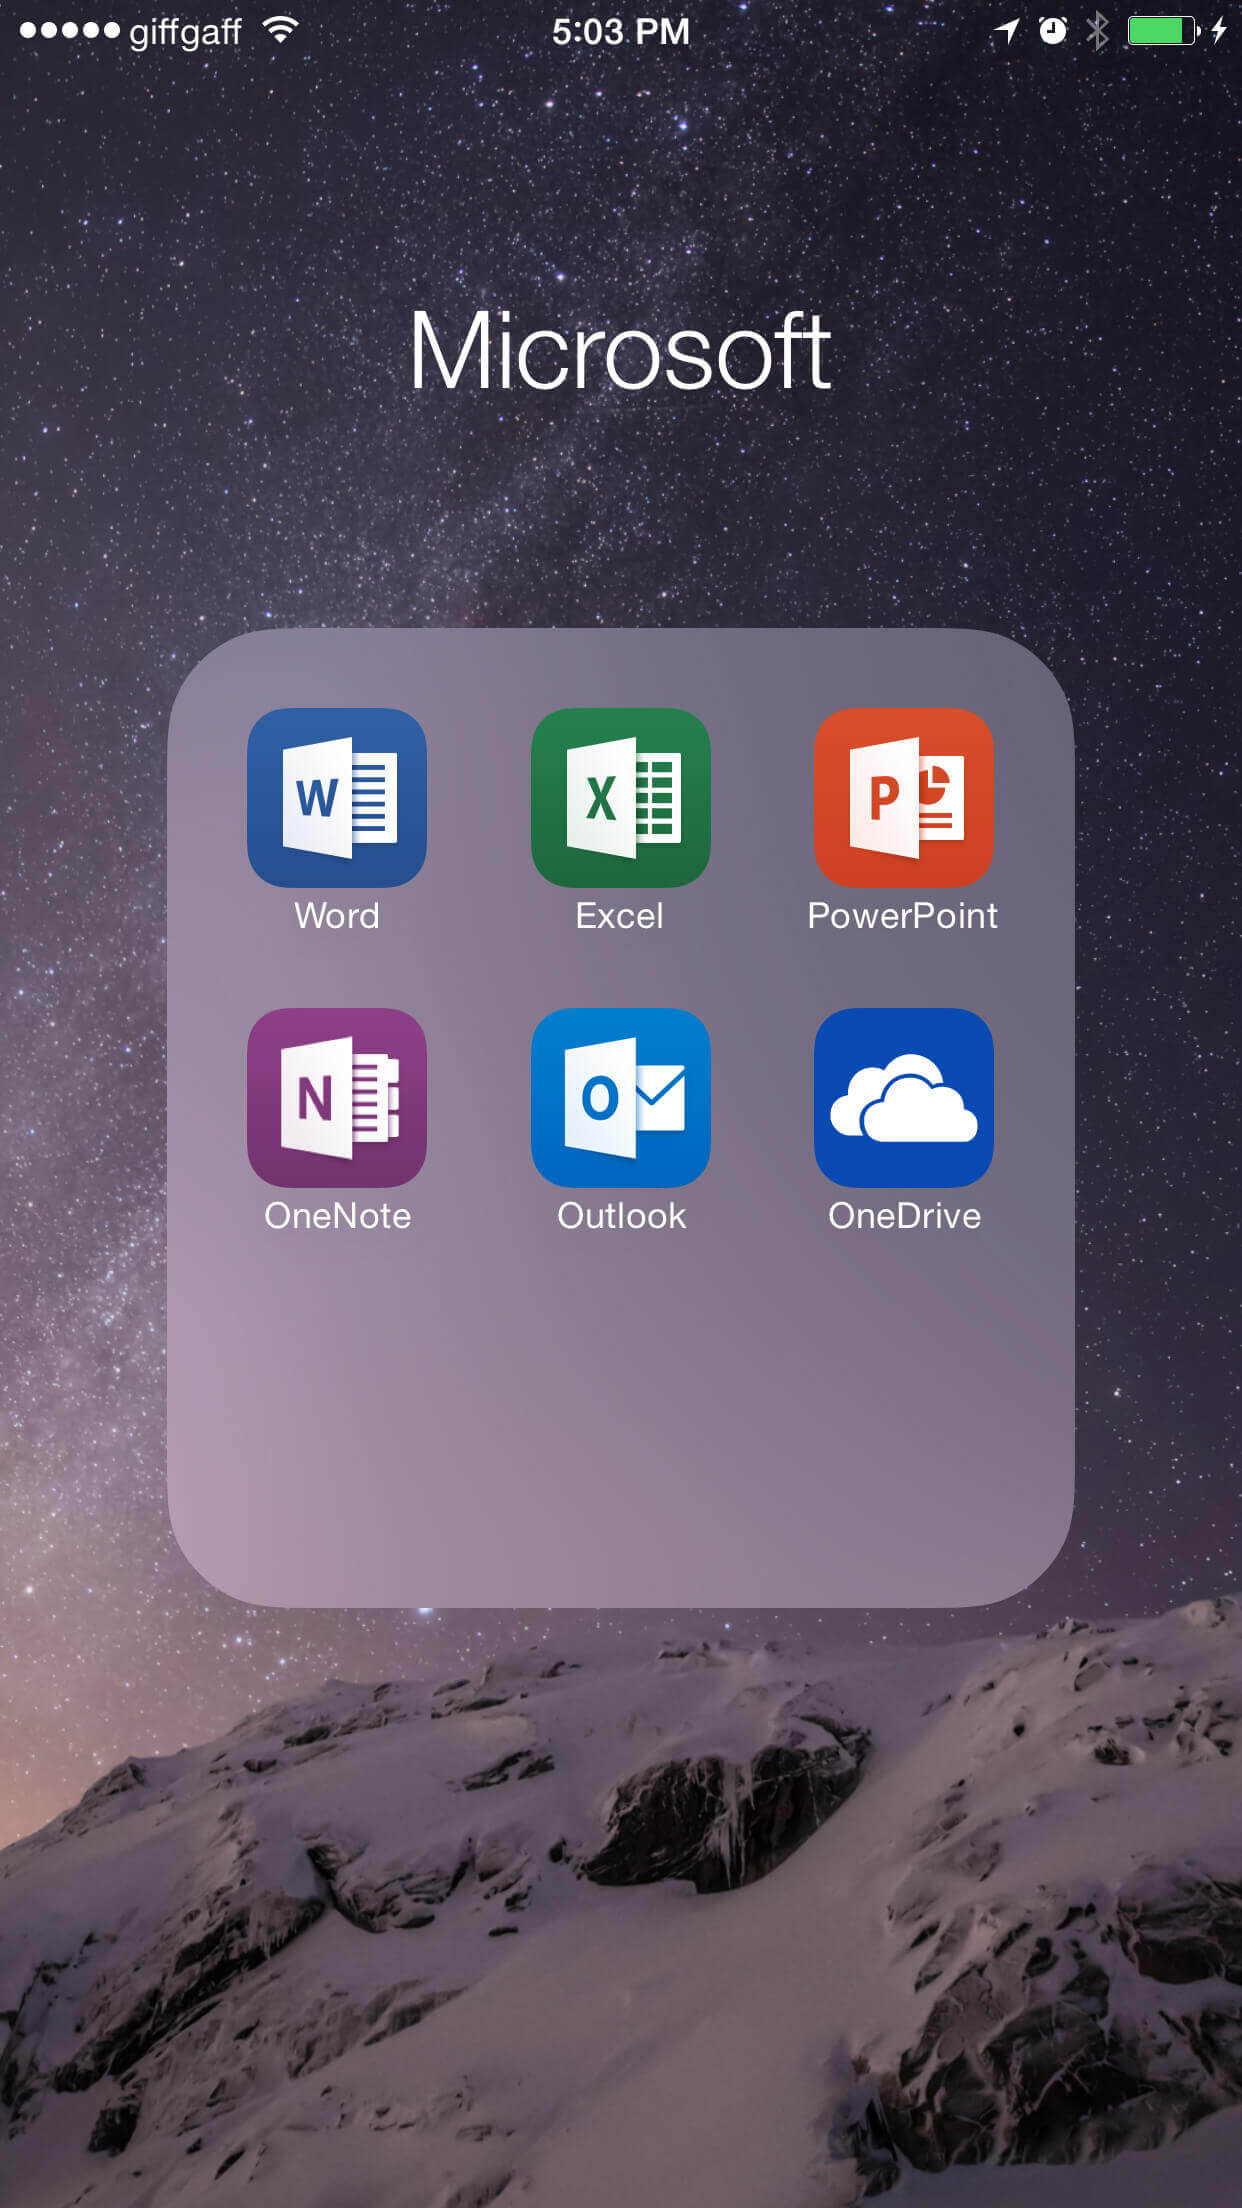 Microsoft Announces New Features Coming To Office For Iphone